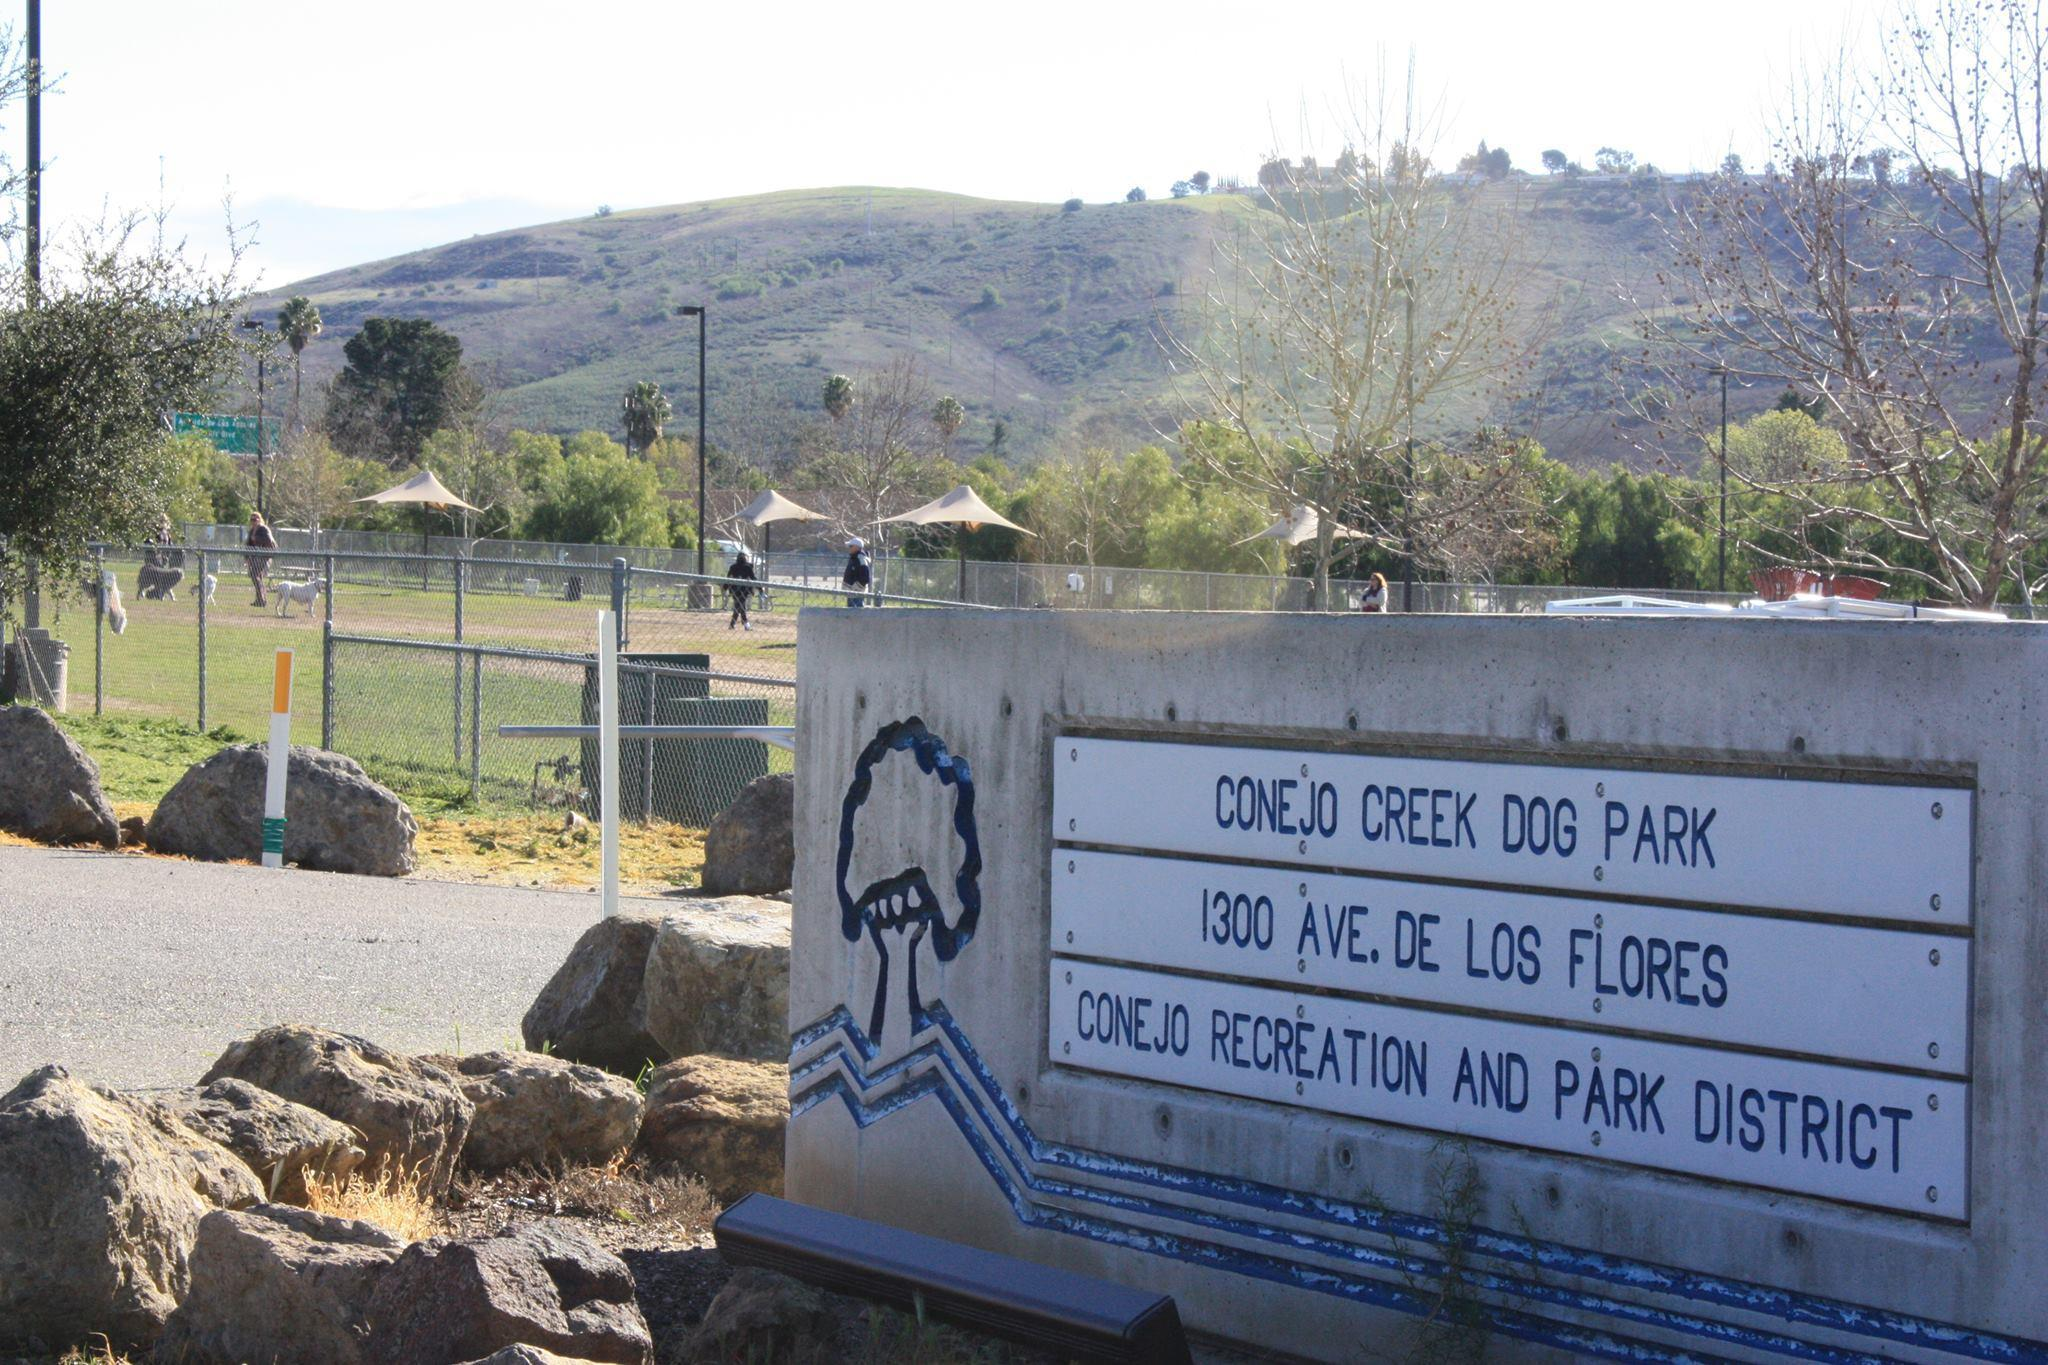 Thousand Oaks Dog Park Facebook